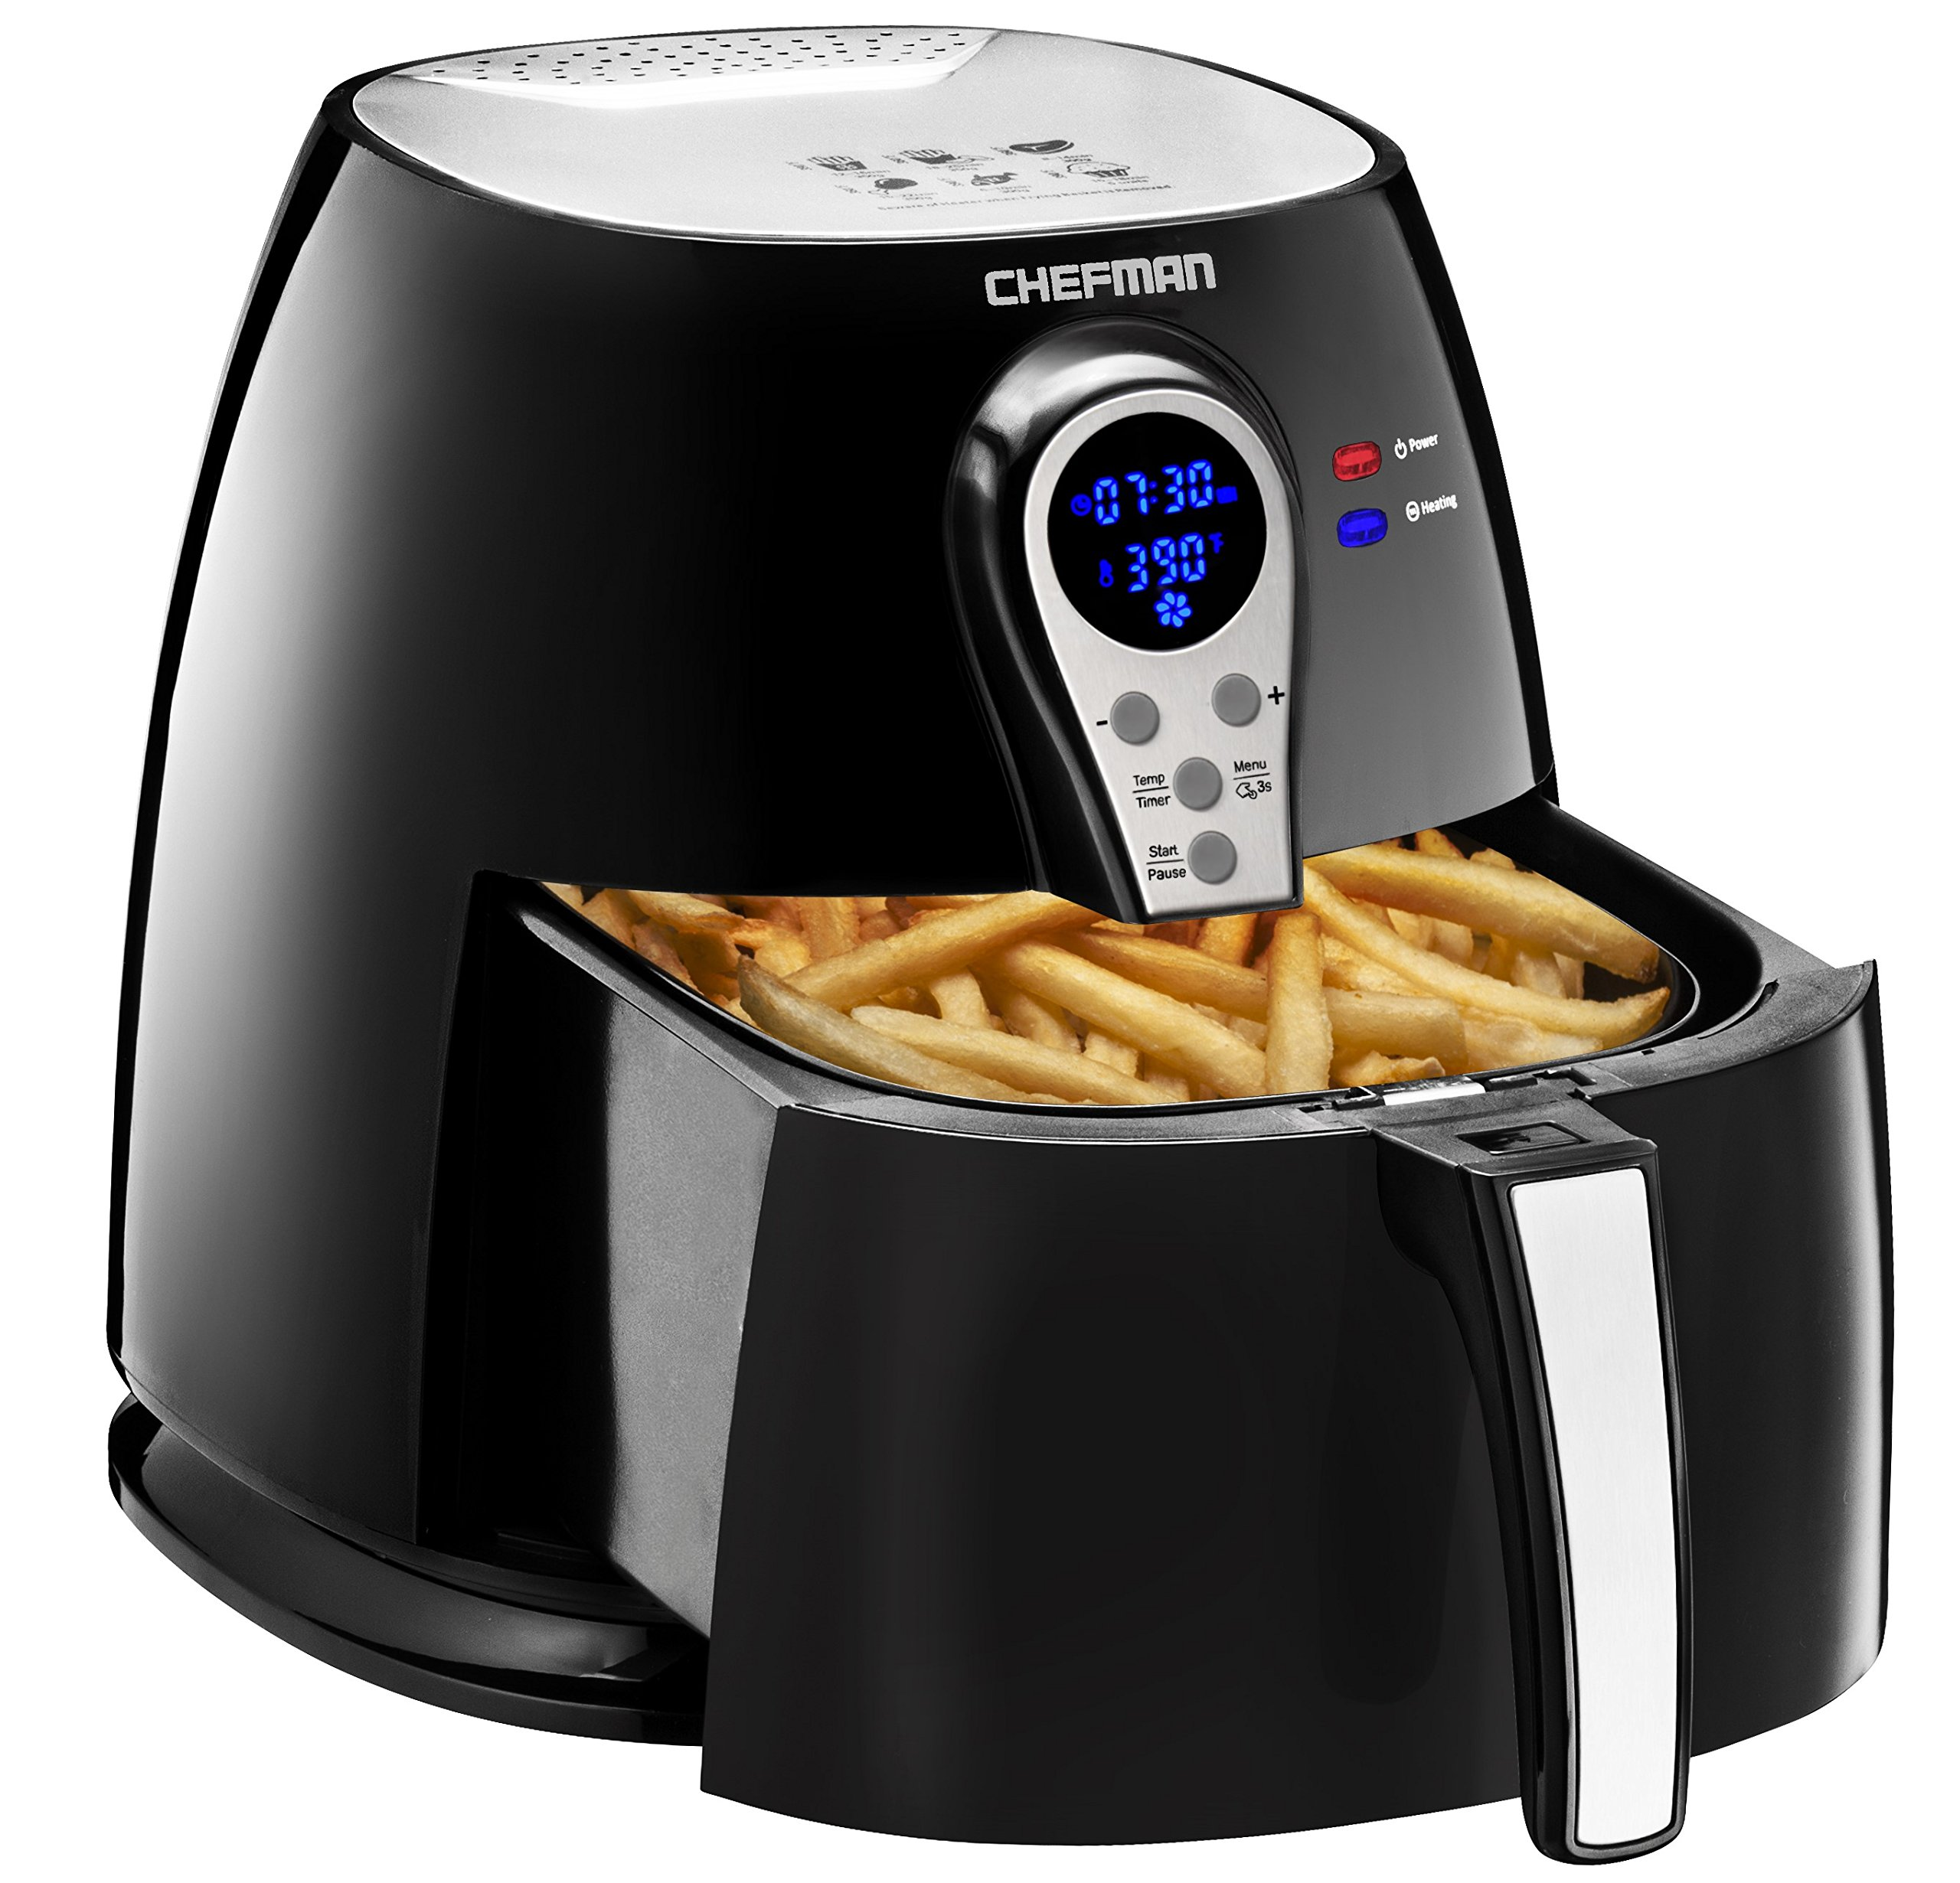 Chefman Air Fryer with Digital Display Adjustable Temperature Control for the Perfect Result in Frying a Variety of Foods, Cool-to-Touch Exterior and 2.5L Fryer Basket Capacity, Black - RJ38-P1